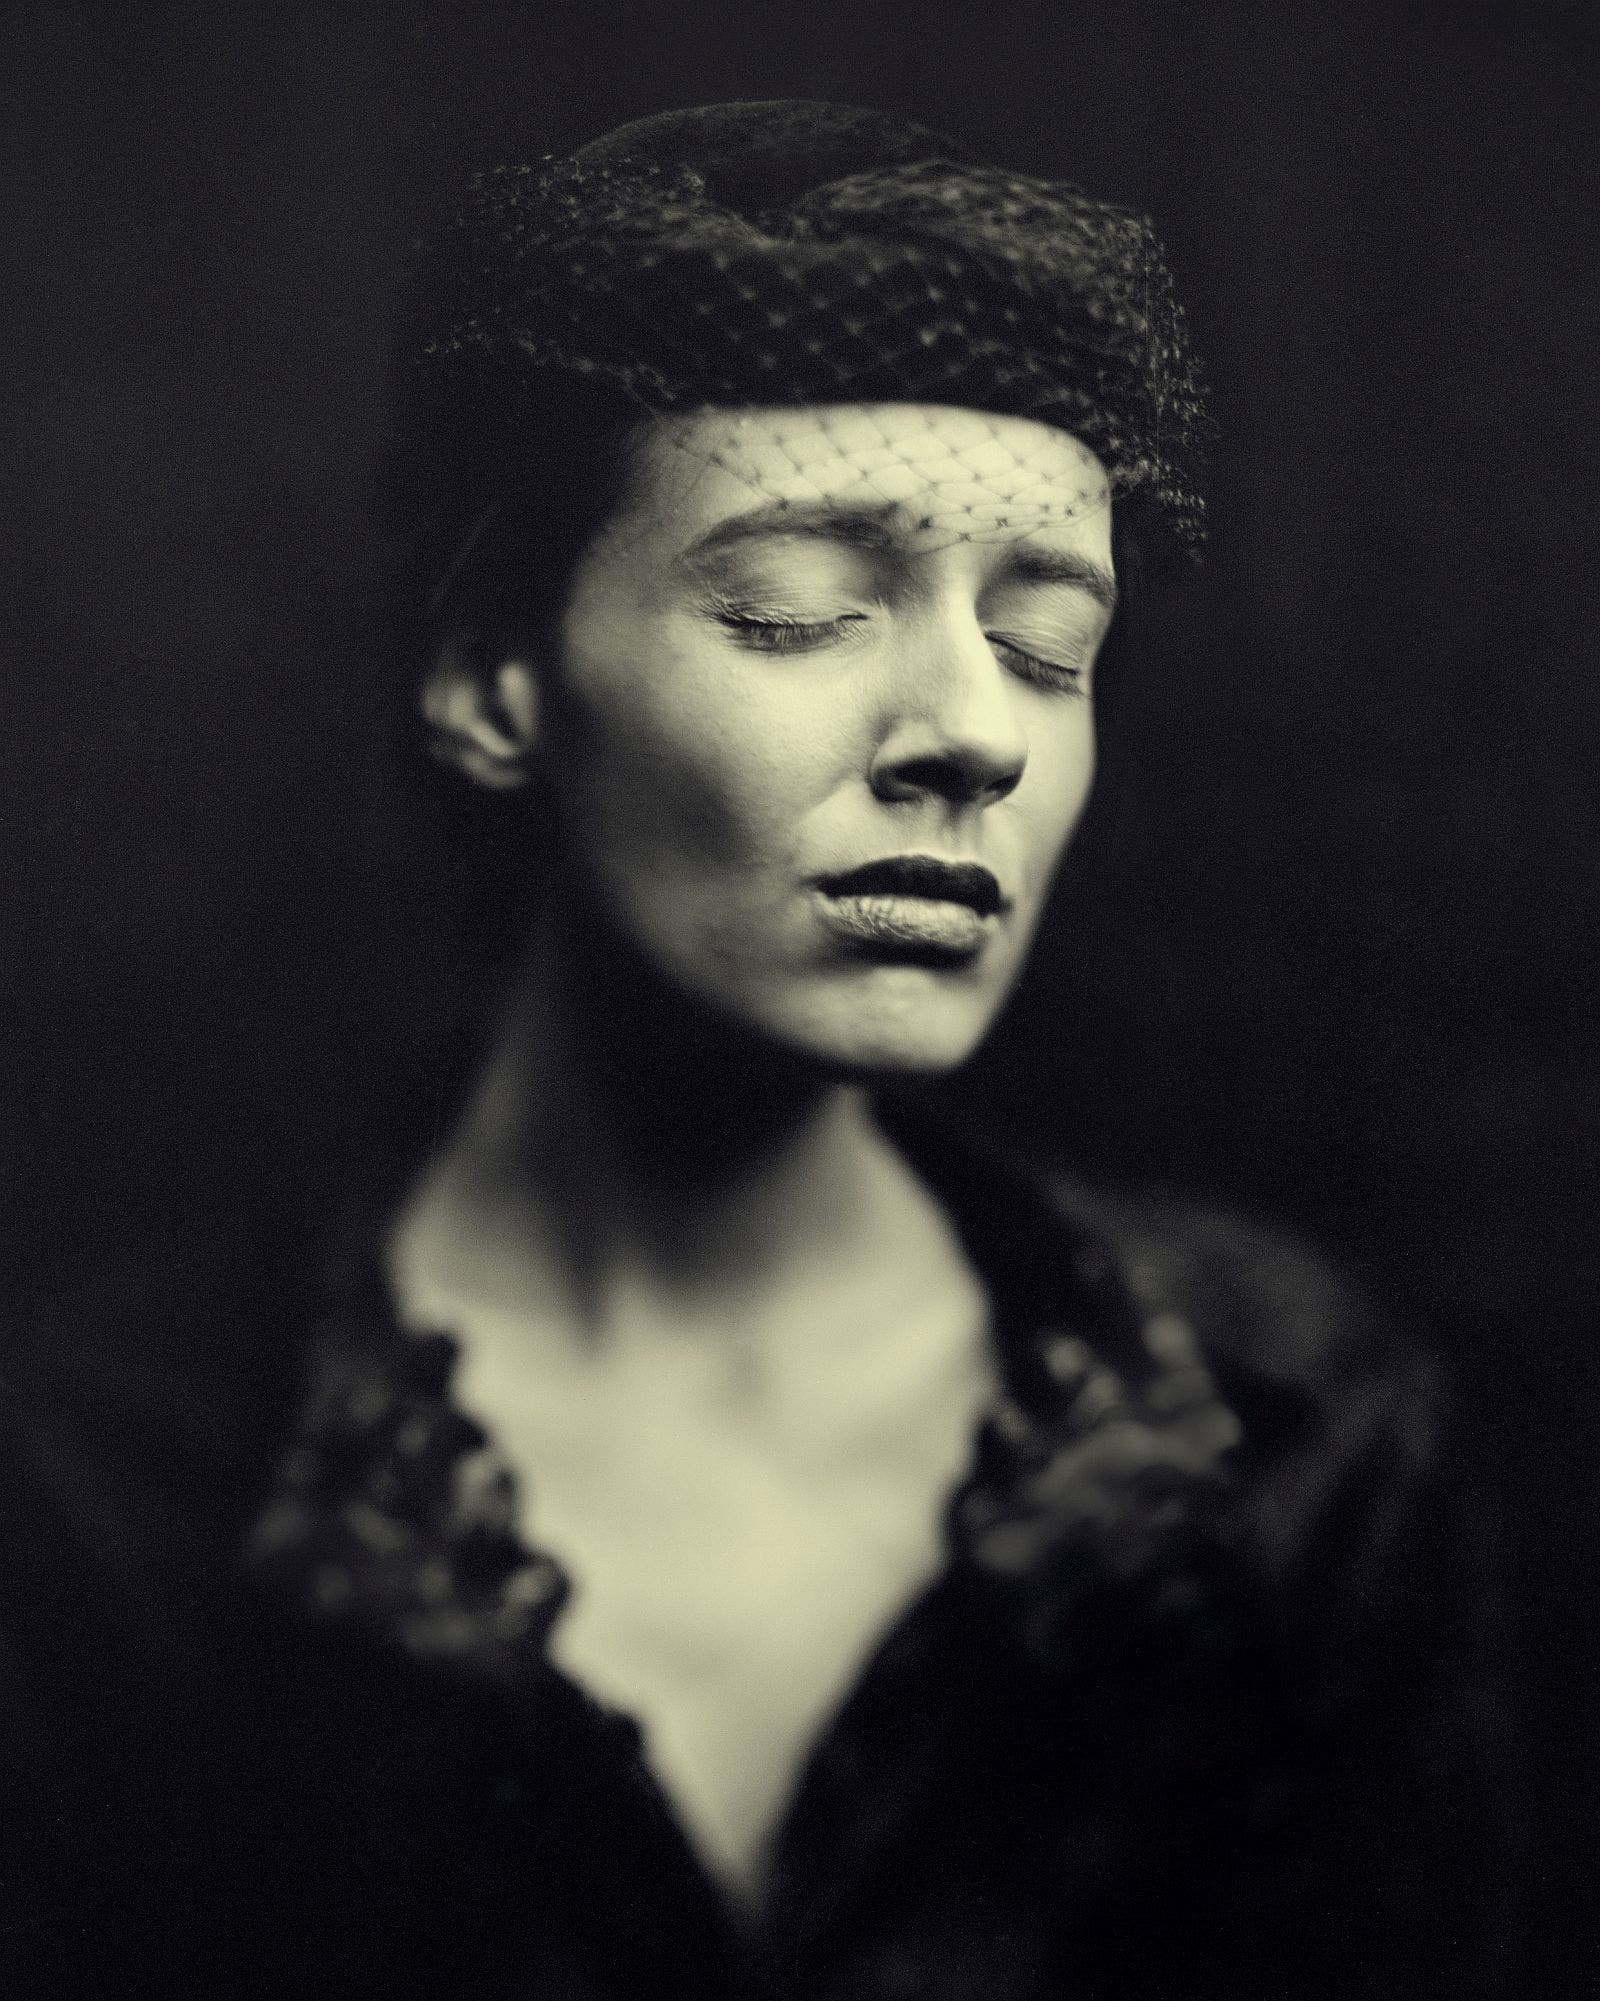 Renata M-ynarczyk - Oliwia - 1st place in PEOPLE PORTRAIT